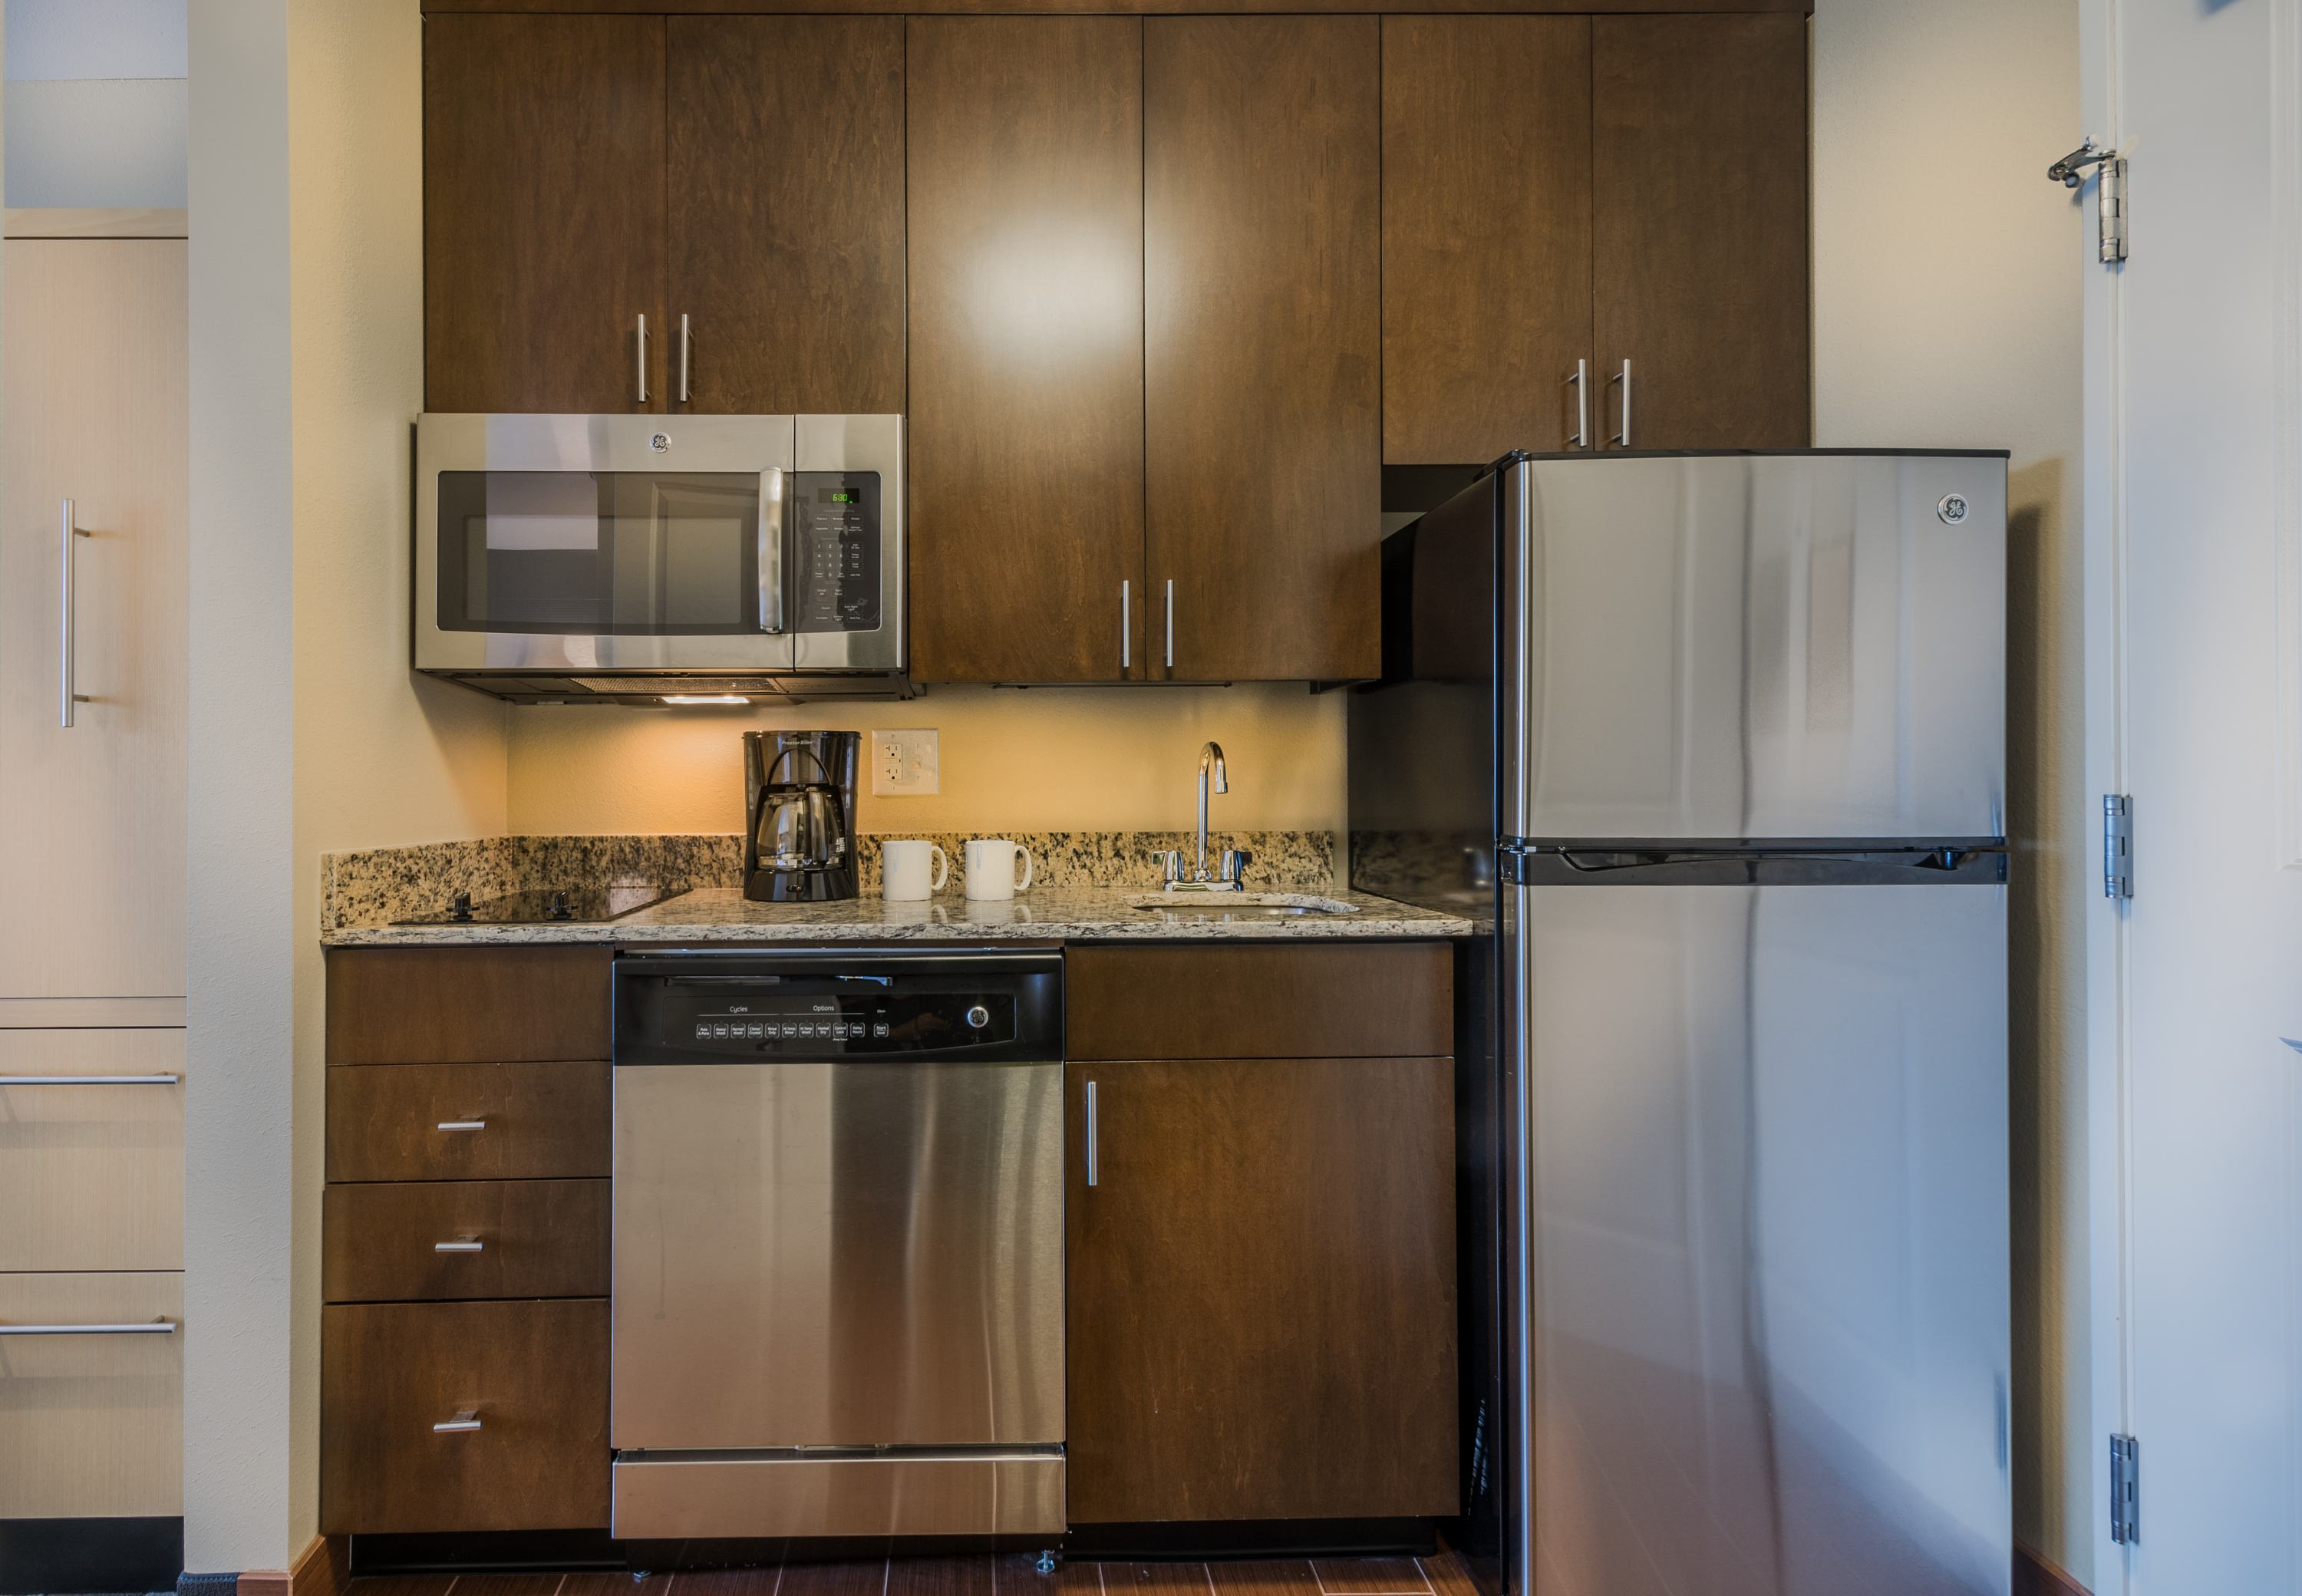 TownePlace Suites by Marriott Goldsboro image 8